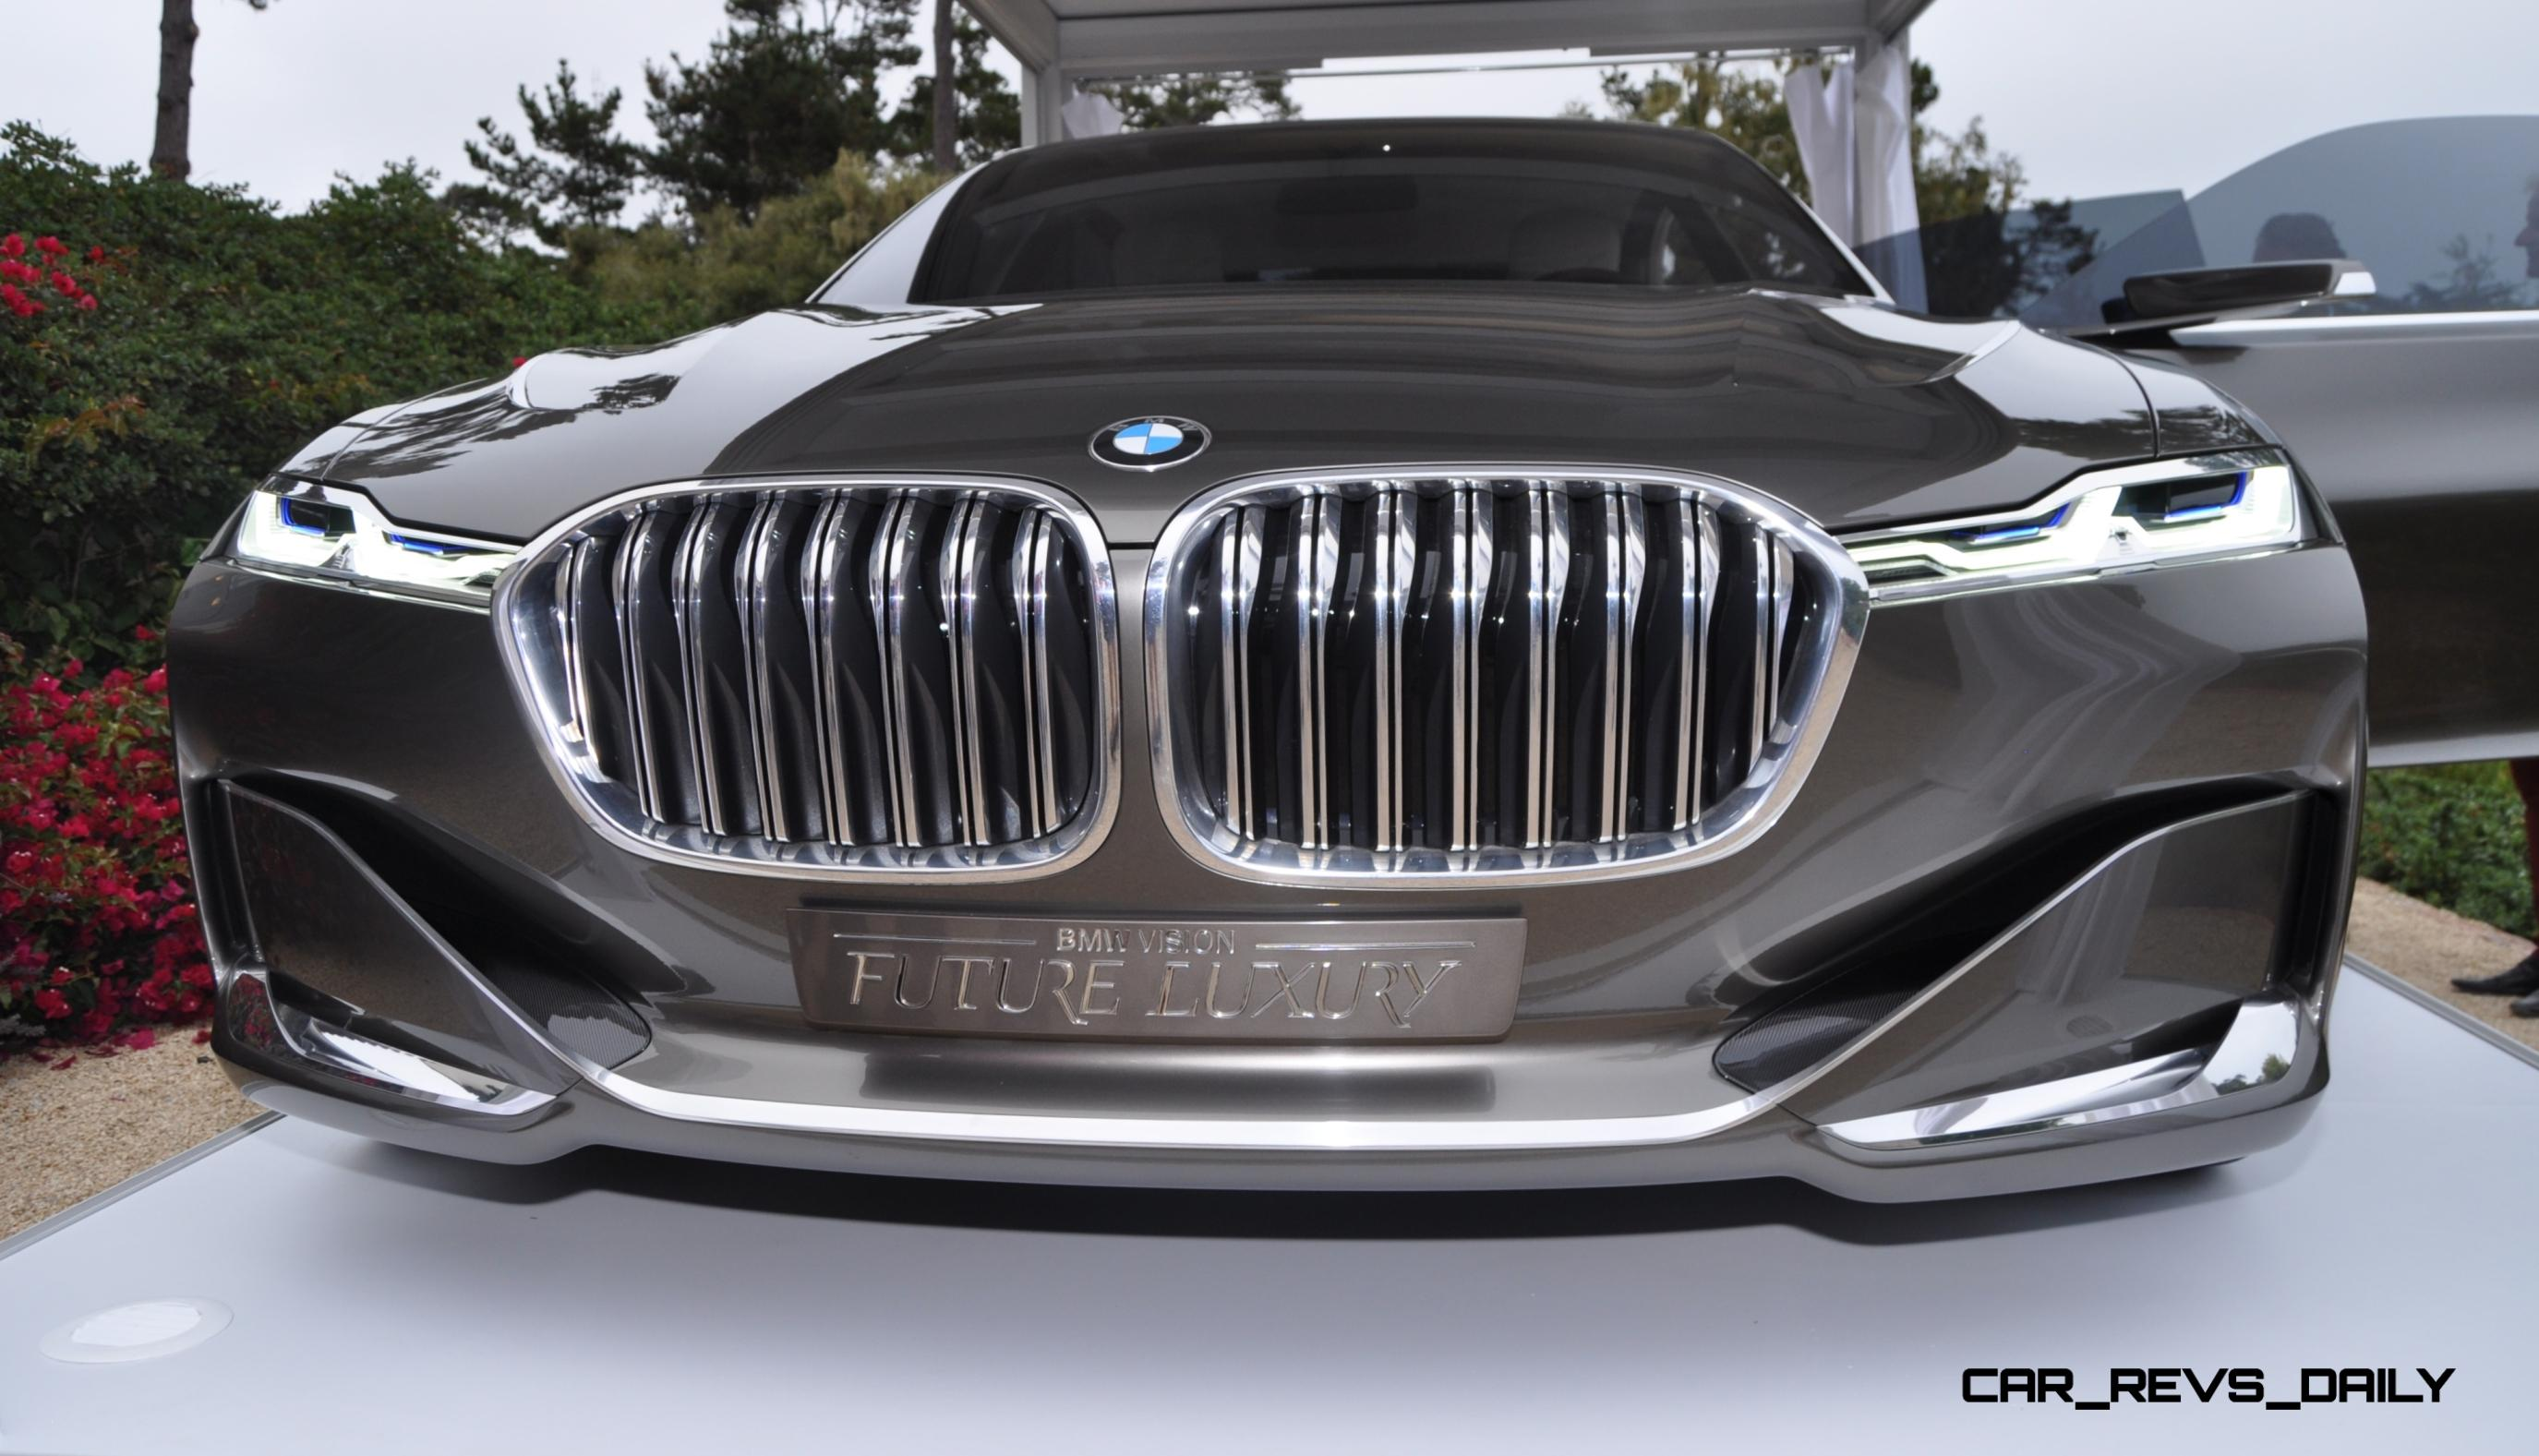 Updated Usa Debut 2014 Bmw Vision Future Luxury Concept Design